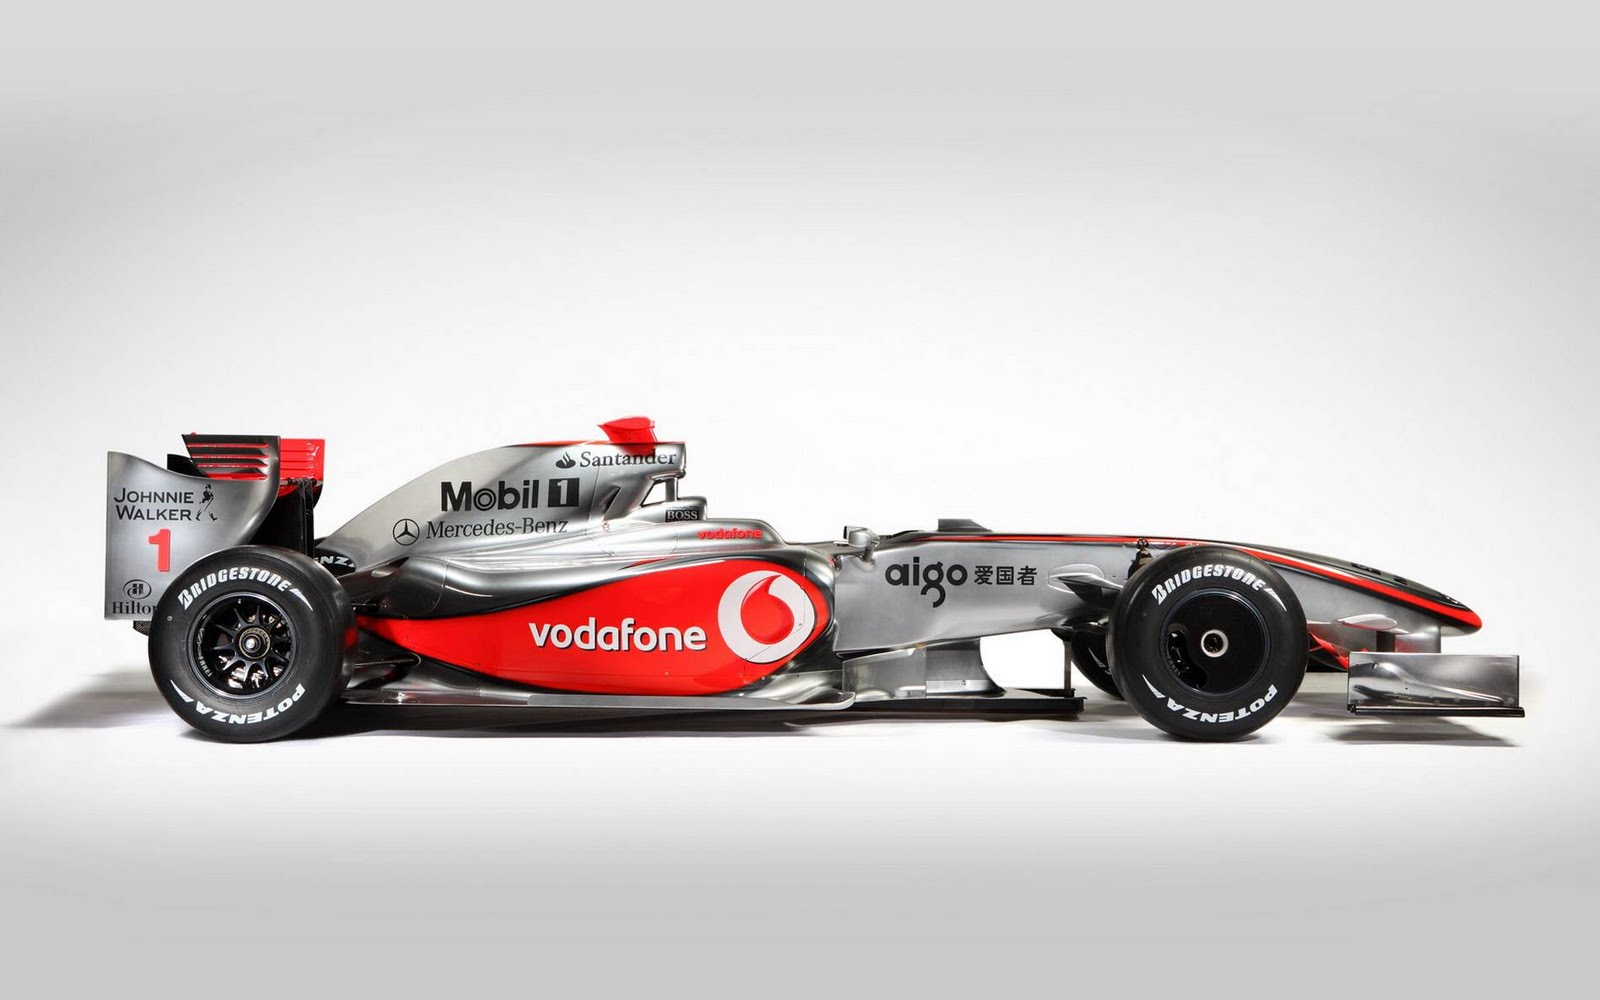 new cars update mclaren formula 1 car